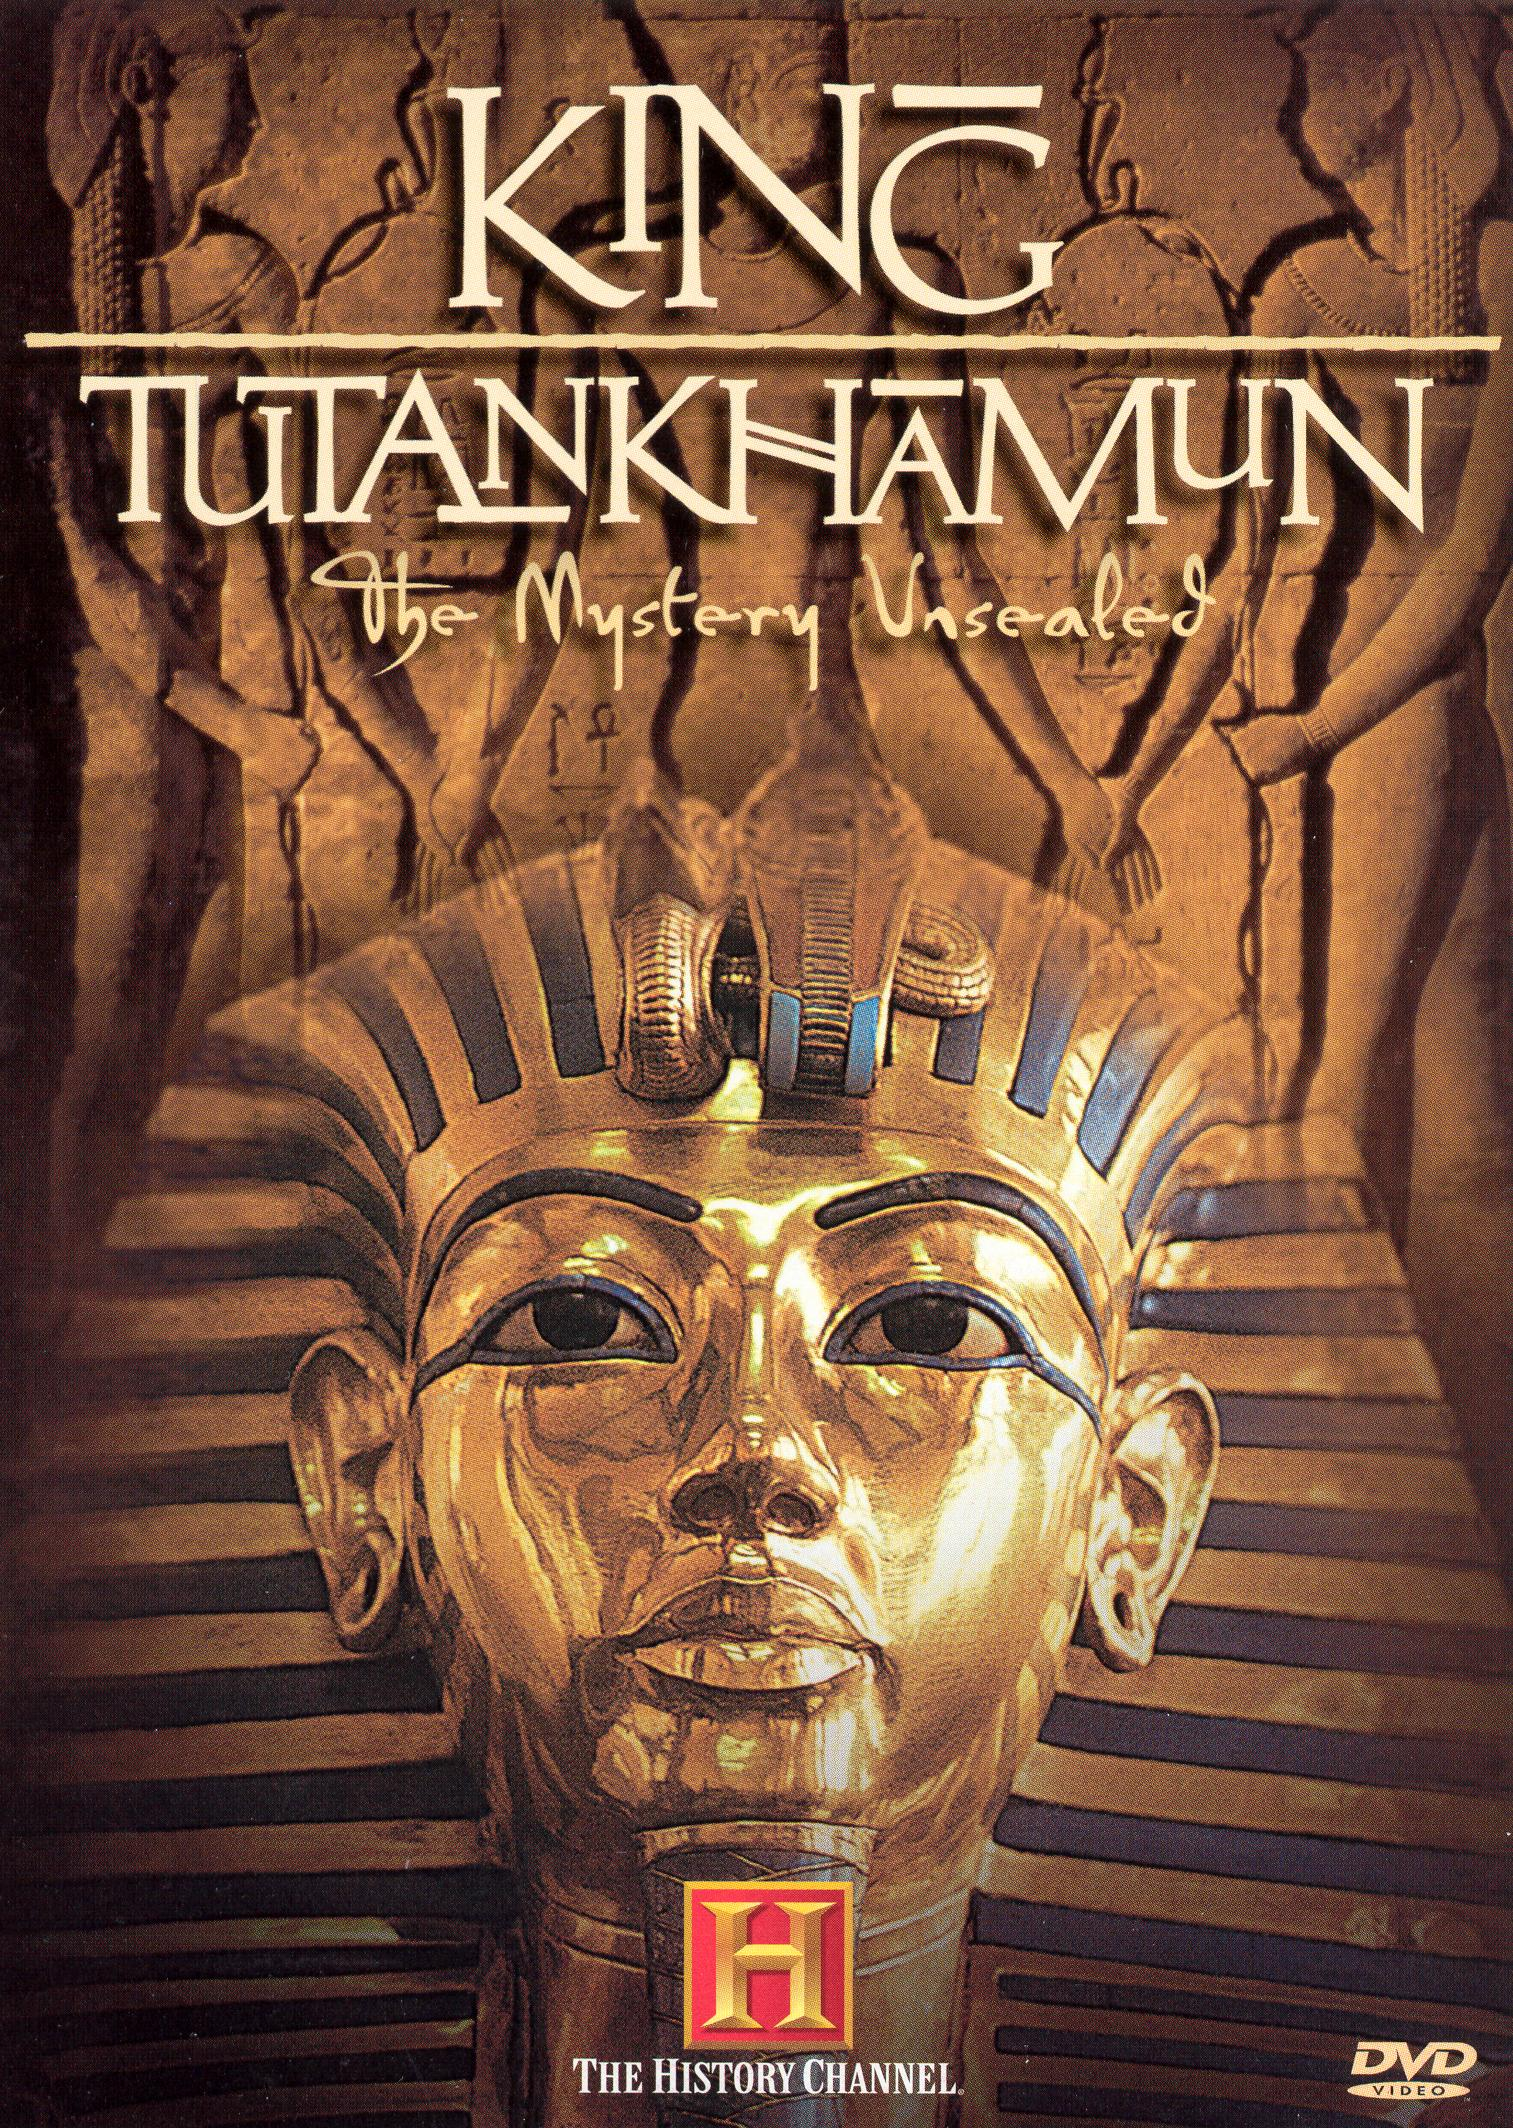 King Tutankhamun: The Mystery Unsealed